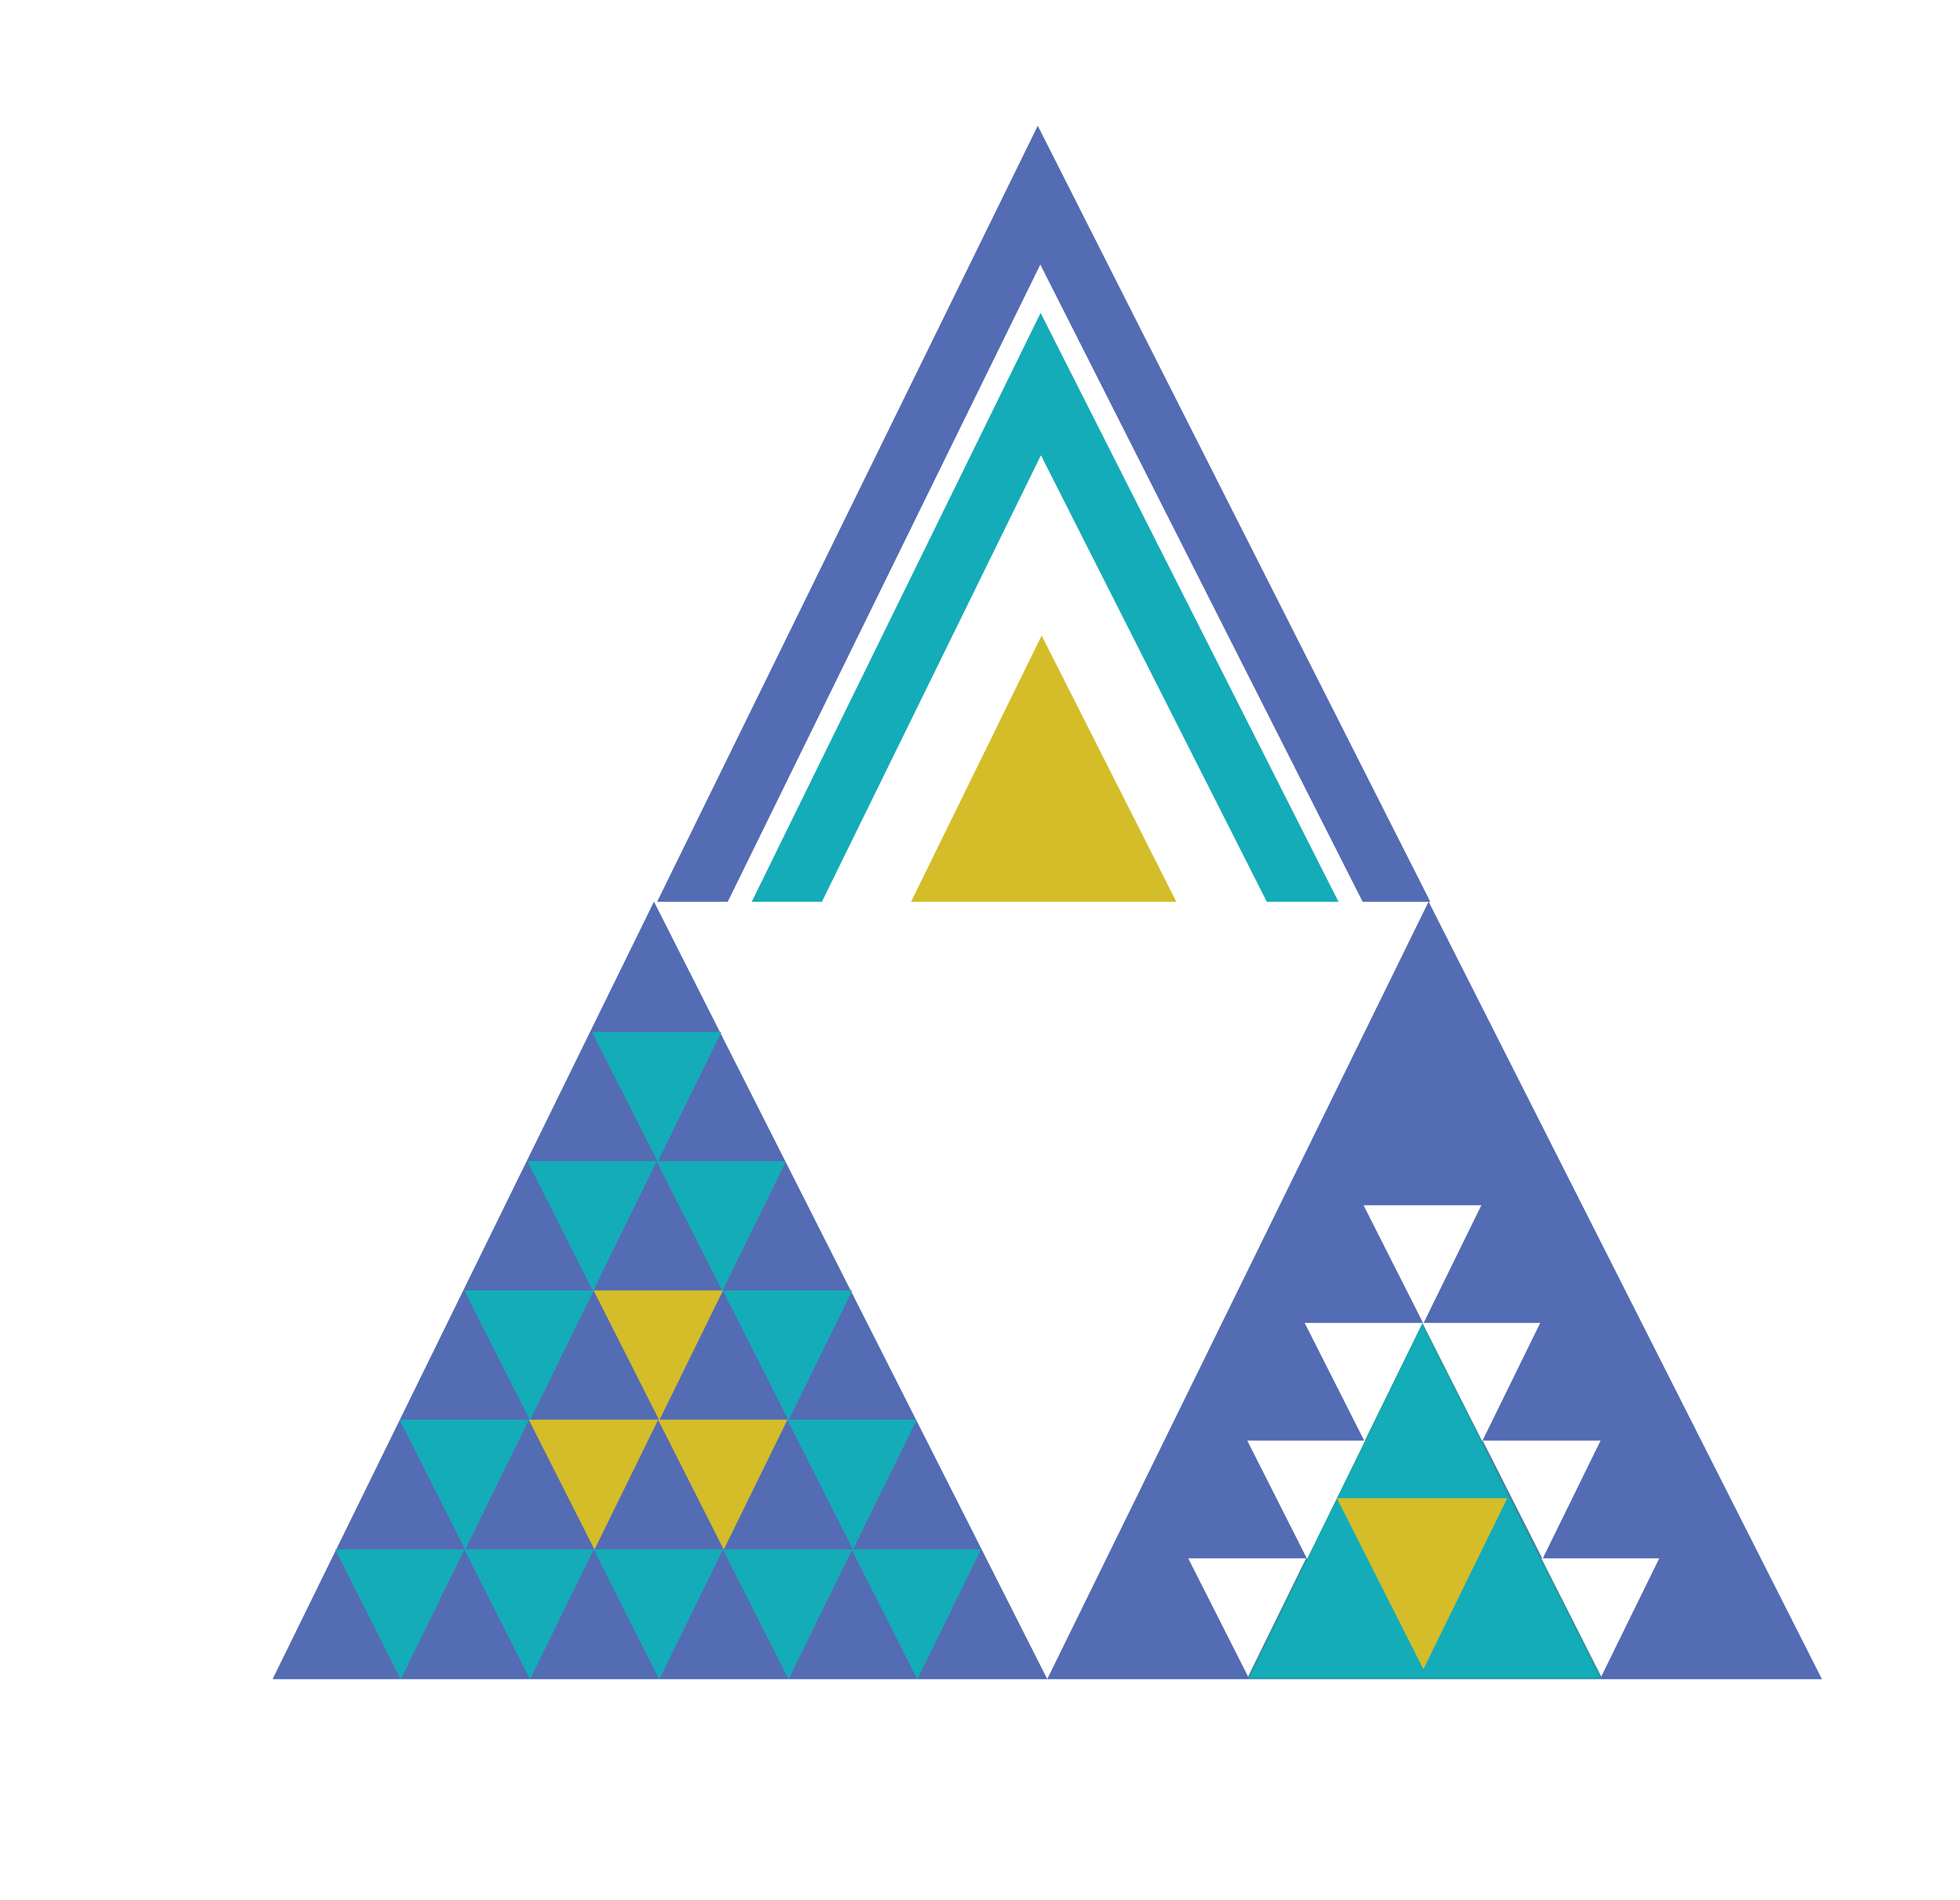 Three triangles designed as logos for each of global identity, global connections, and global challenges